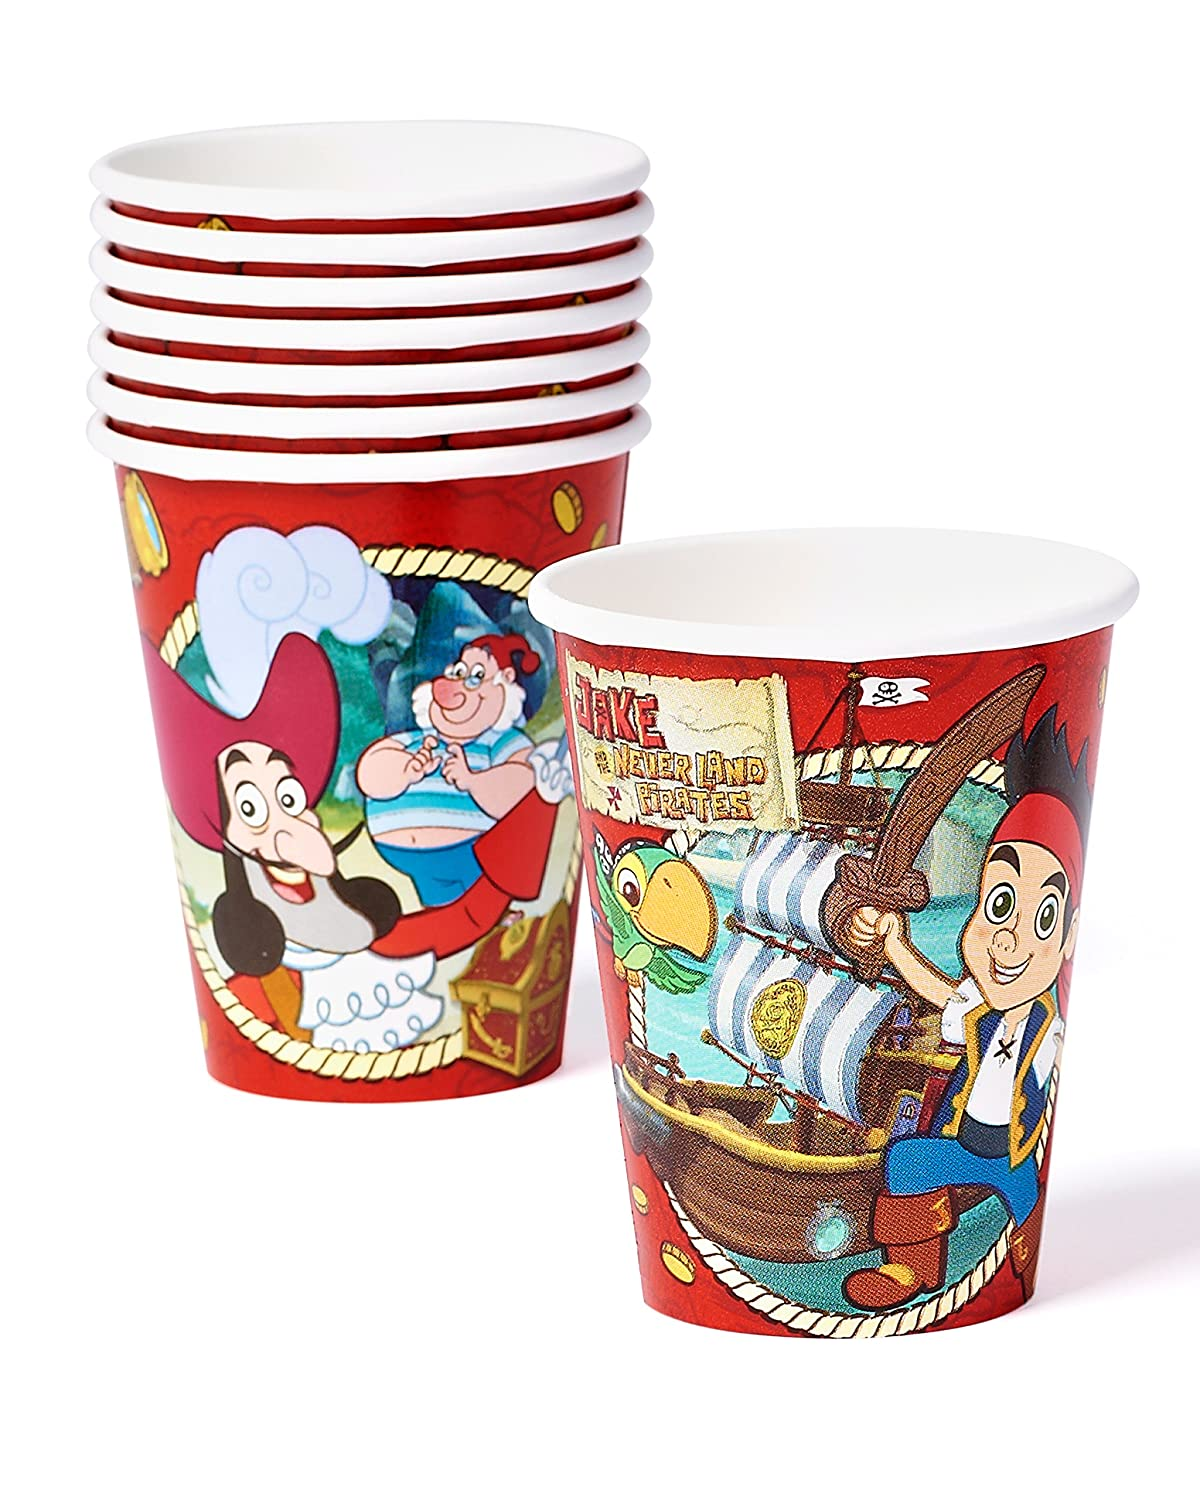 (8-Count, Paper Cups) - American Greetings Jake the Never Land Pirates 270ml Paper Party Cups, 8 Count, Party Supplies Novelty   B00KO1E46G